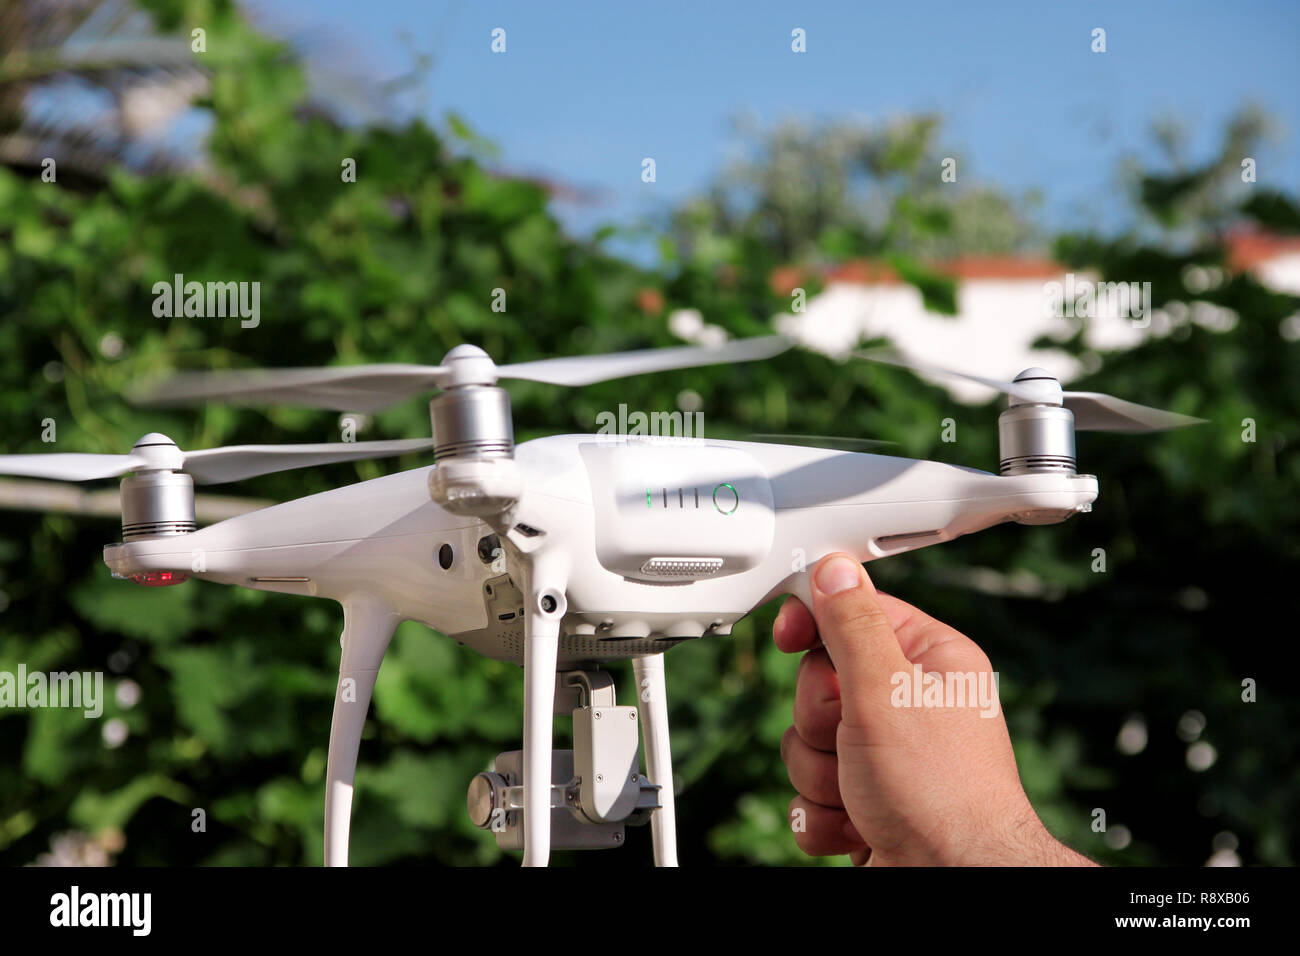 Man is holding a drone in hand and using of new technology